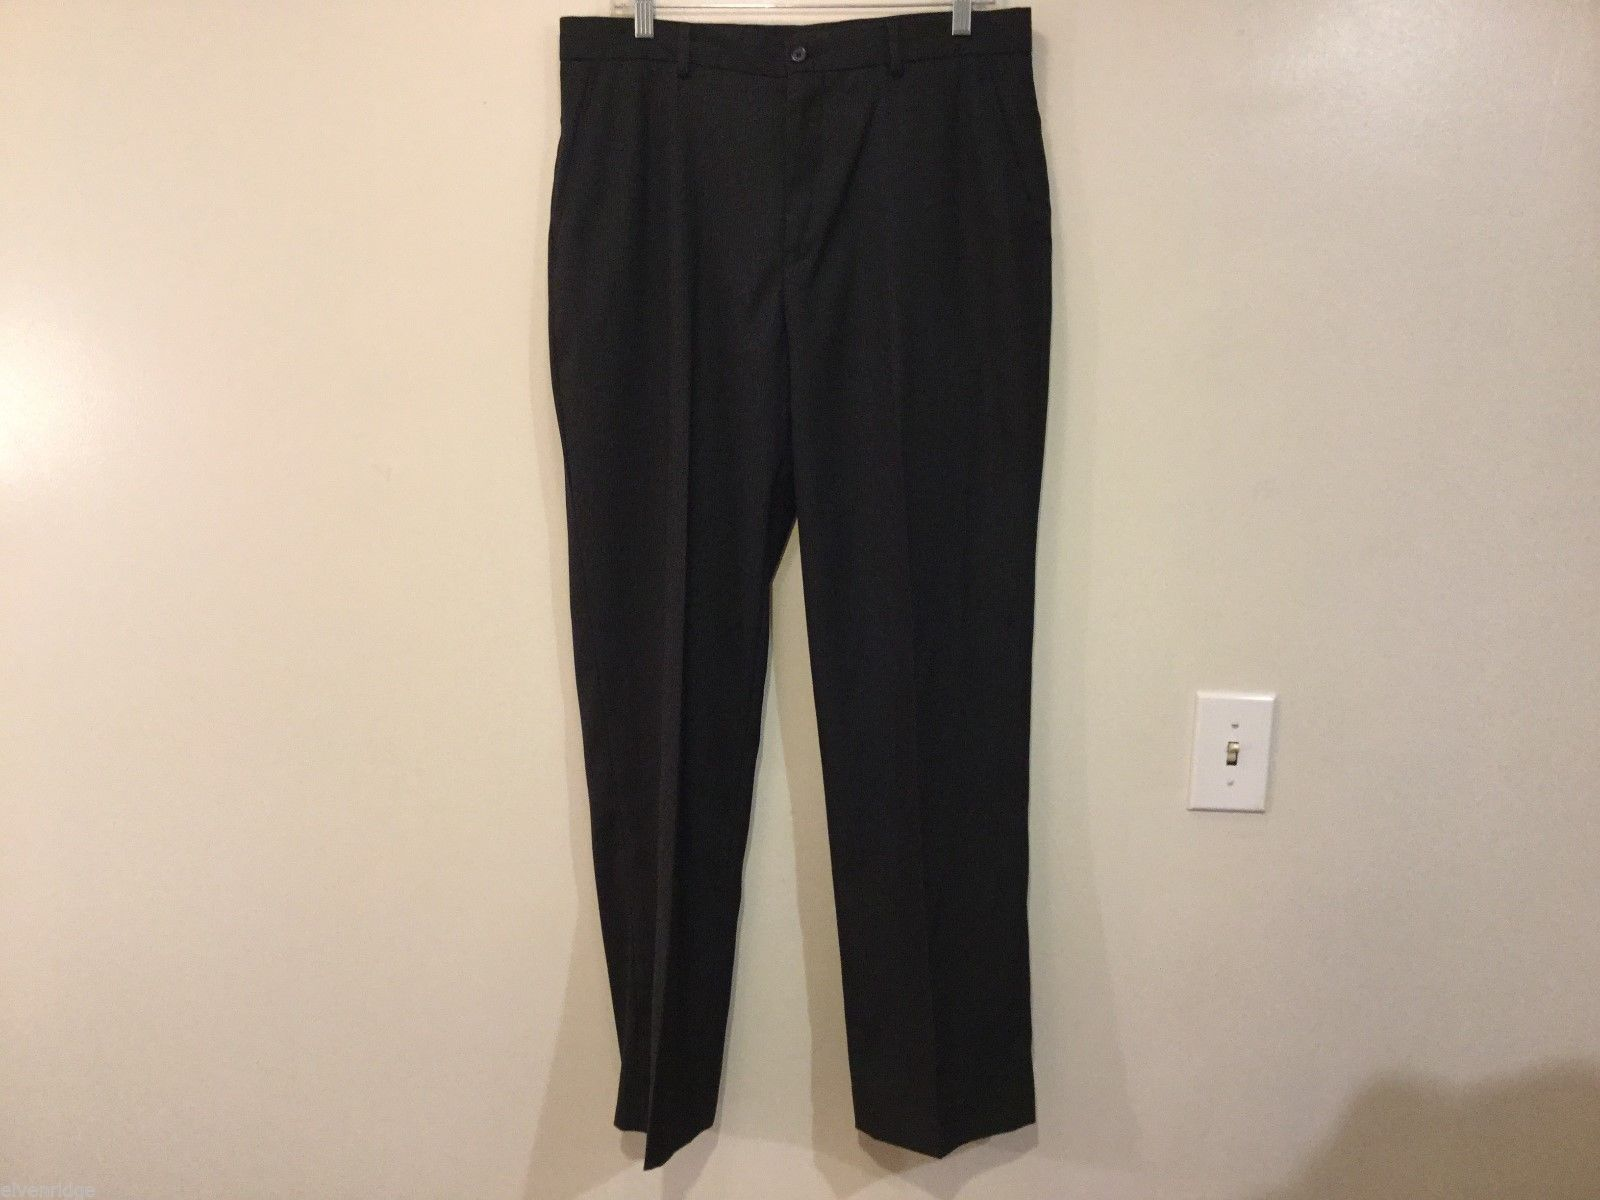 Perry Ellis Mens Black Dress Pants, Size 33/32